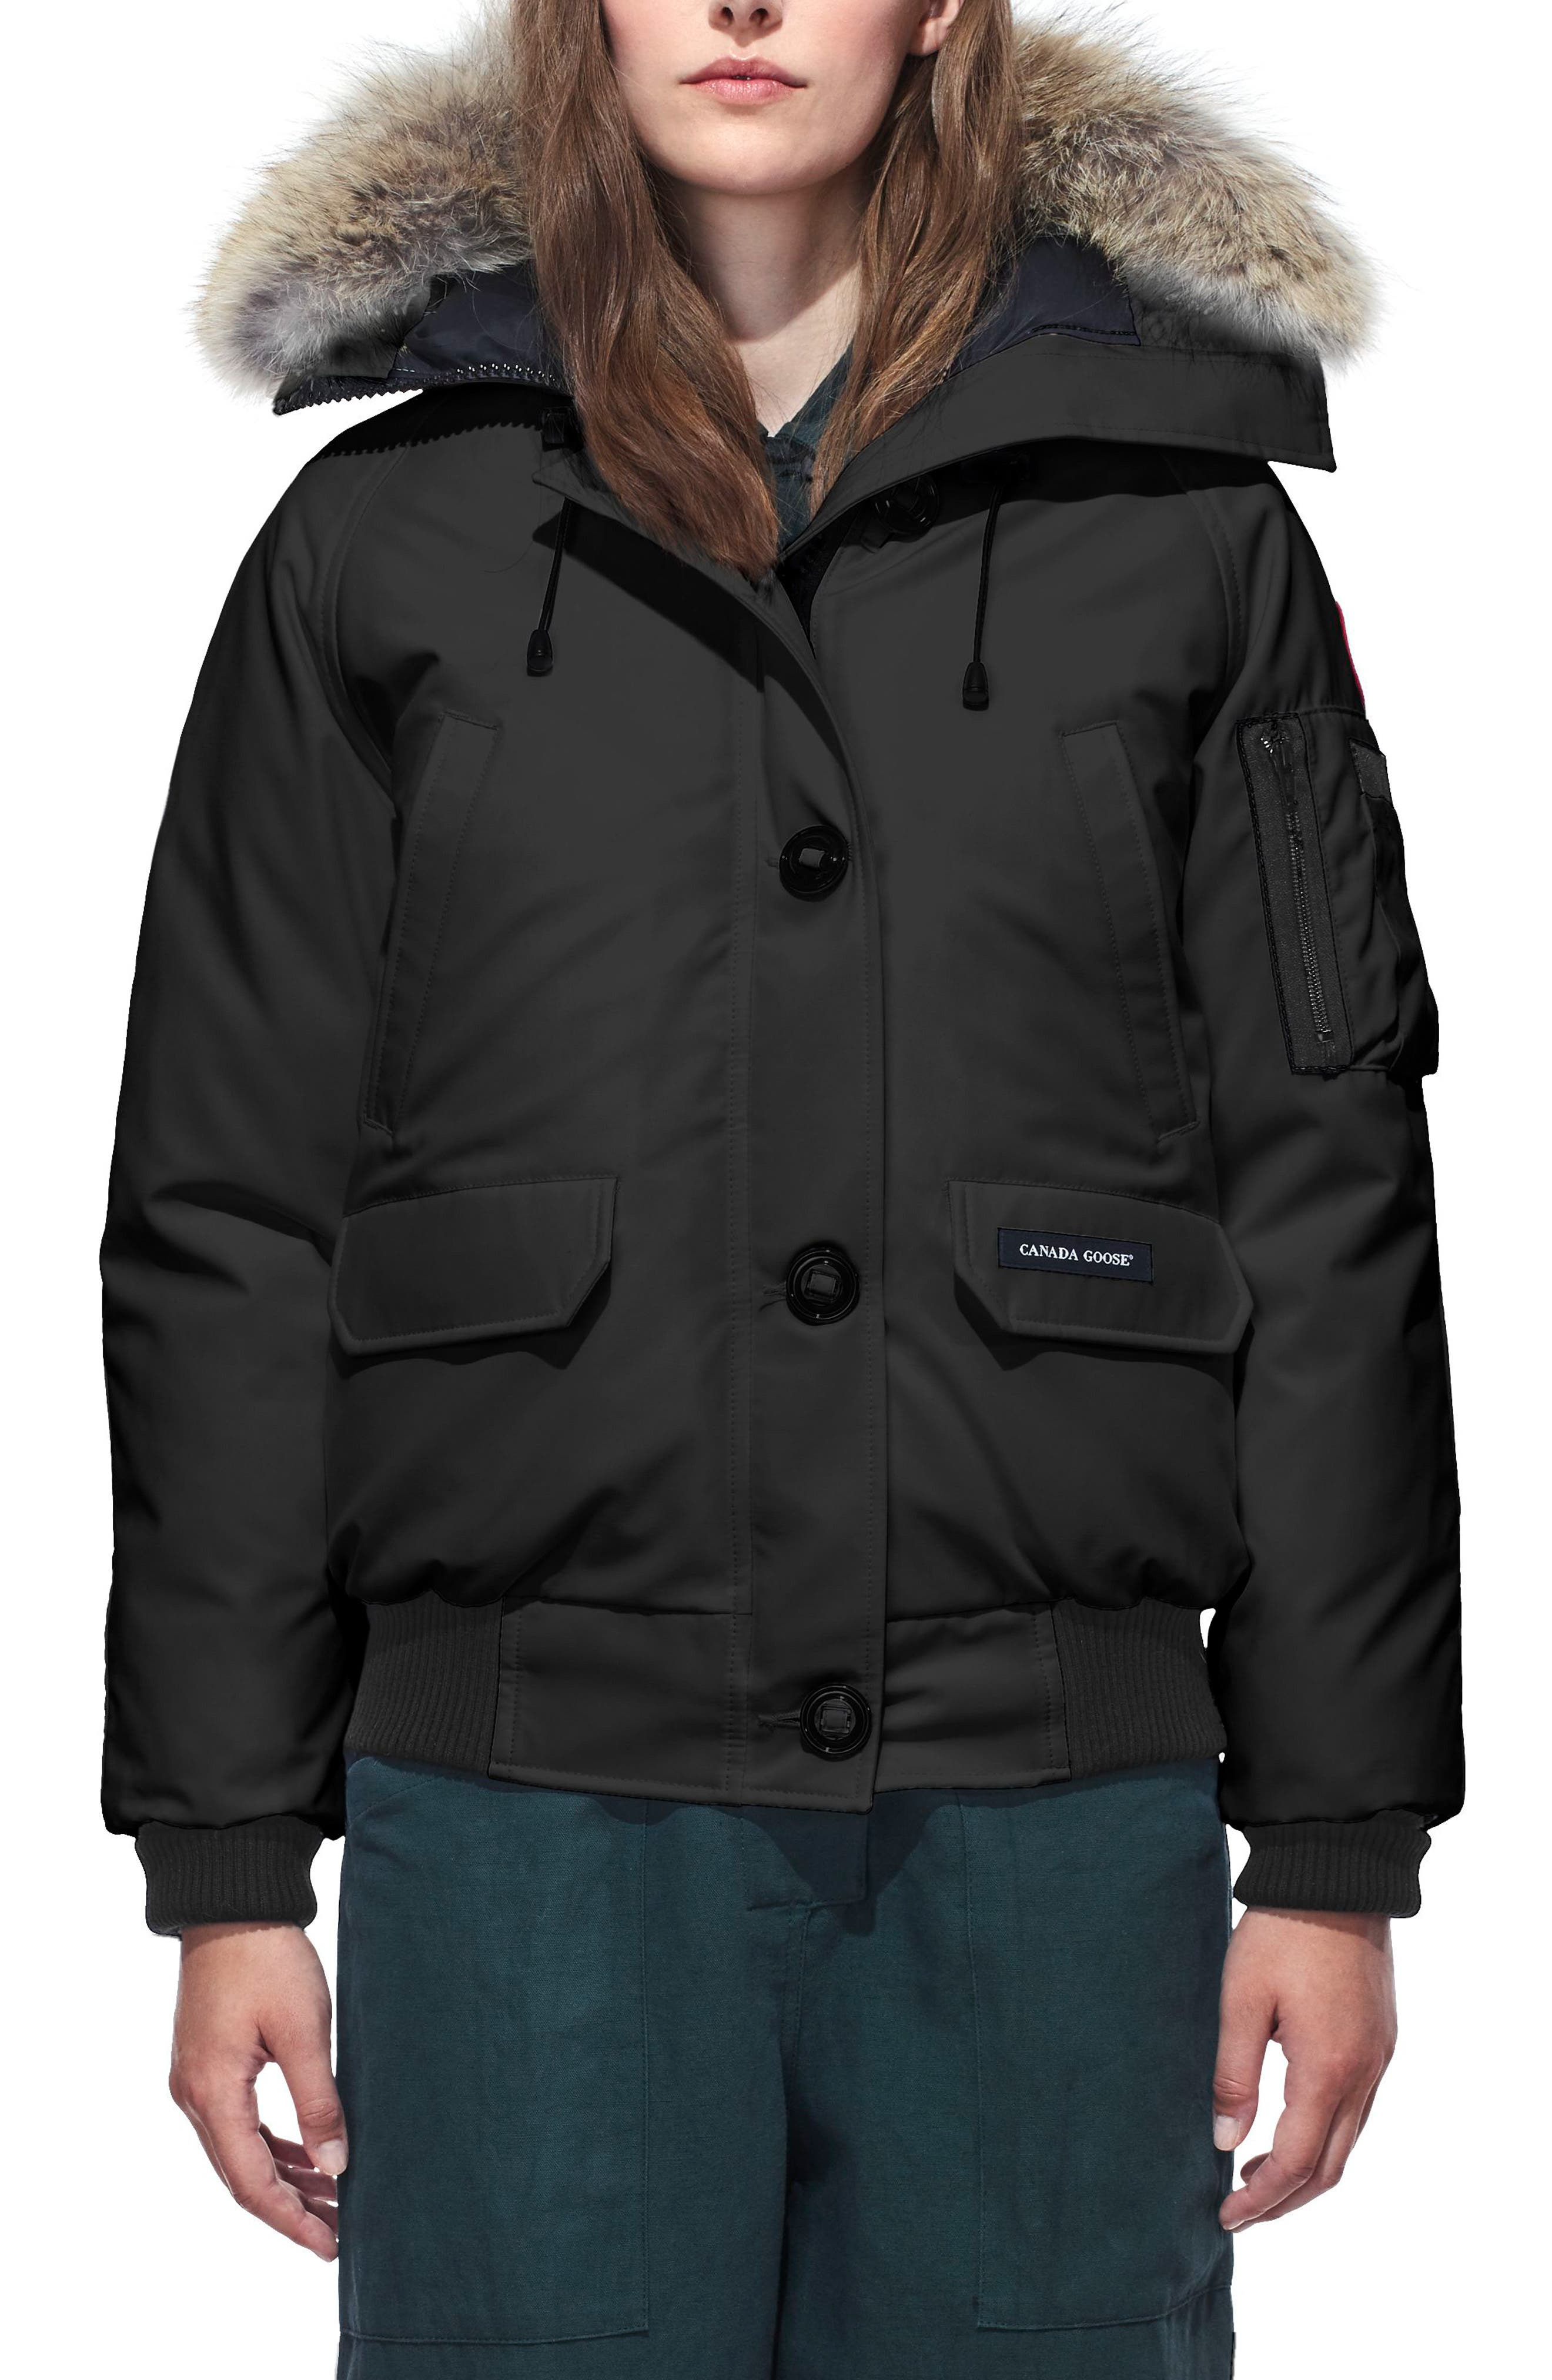 Petite Canada Goose Chilliwack Fusion Fit 625 Fill Power Down Bomber Jacket With Genuine Coyote Fur Trim, P (6-8P) - Black